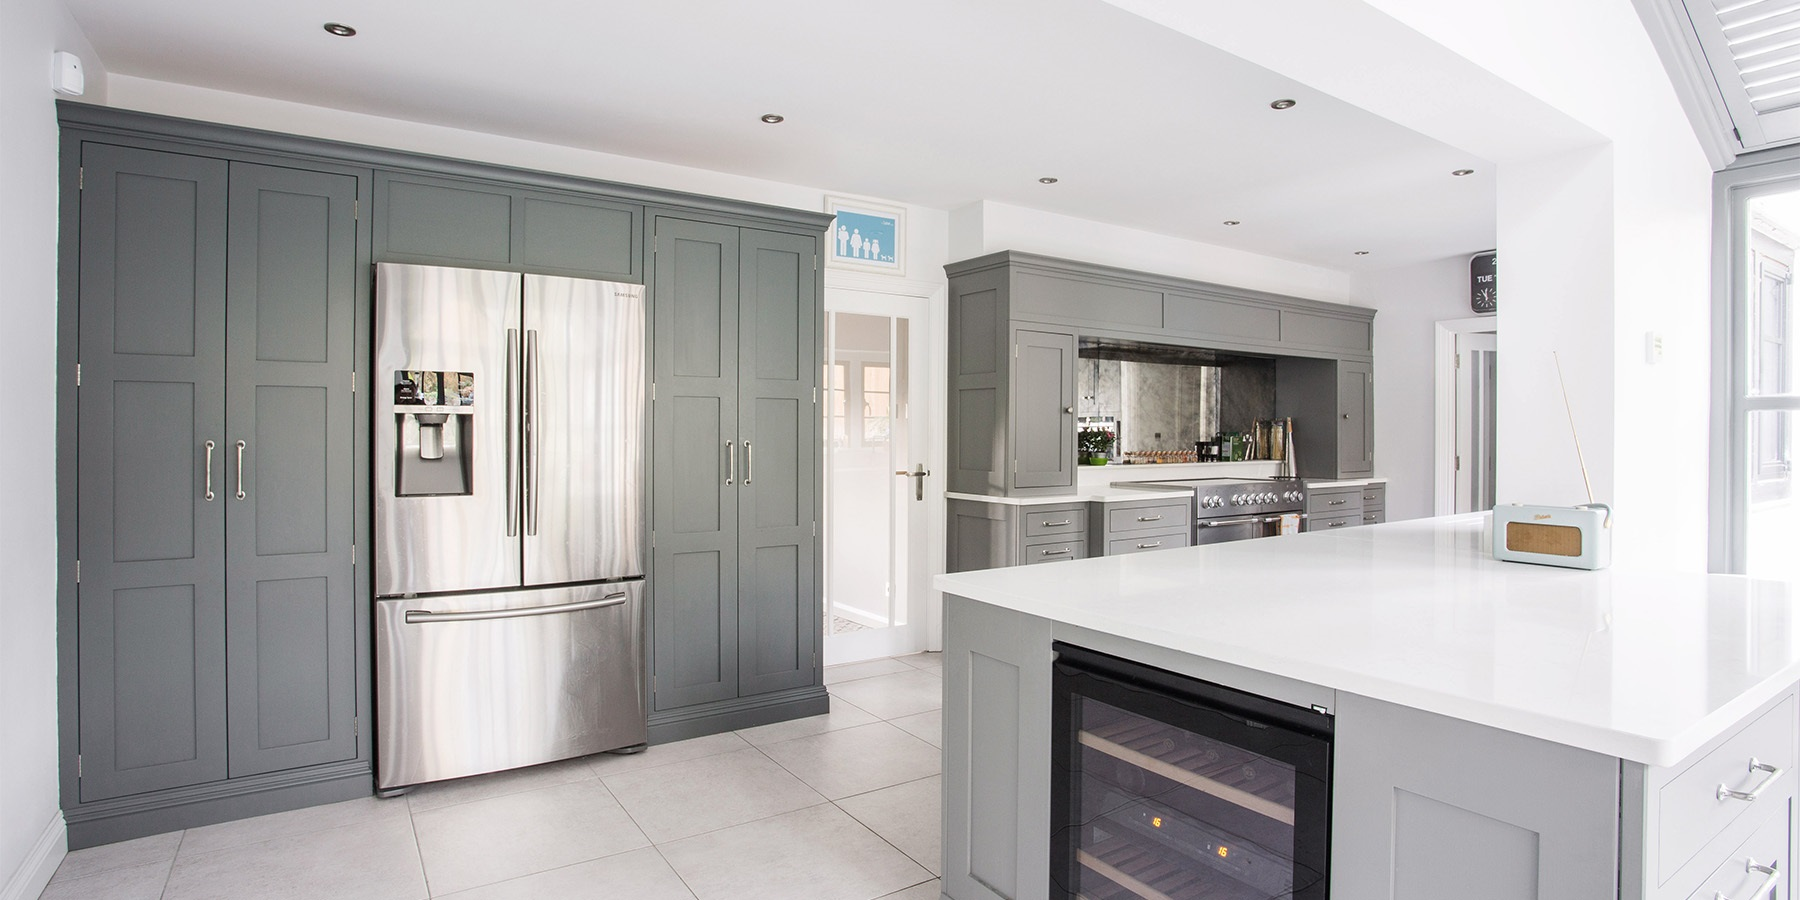 Burlanes Interiors - A bespoke, handmade shaker kitchen and dining room extension, perfect for entertaining and for all the family to enjoy!